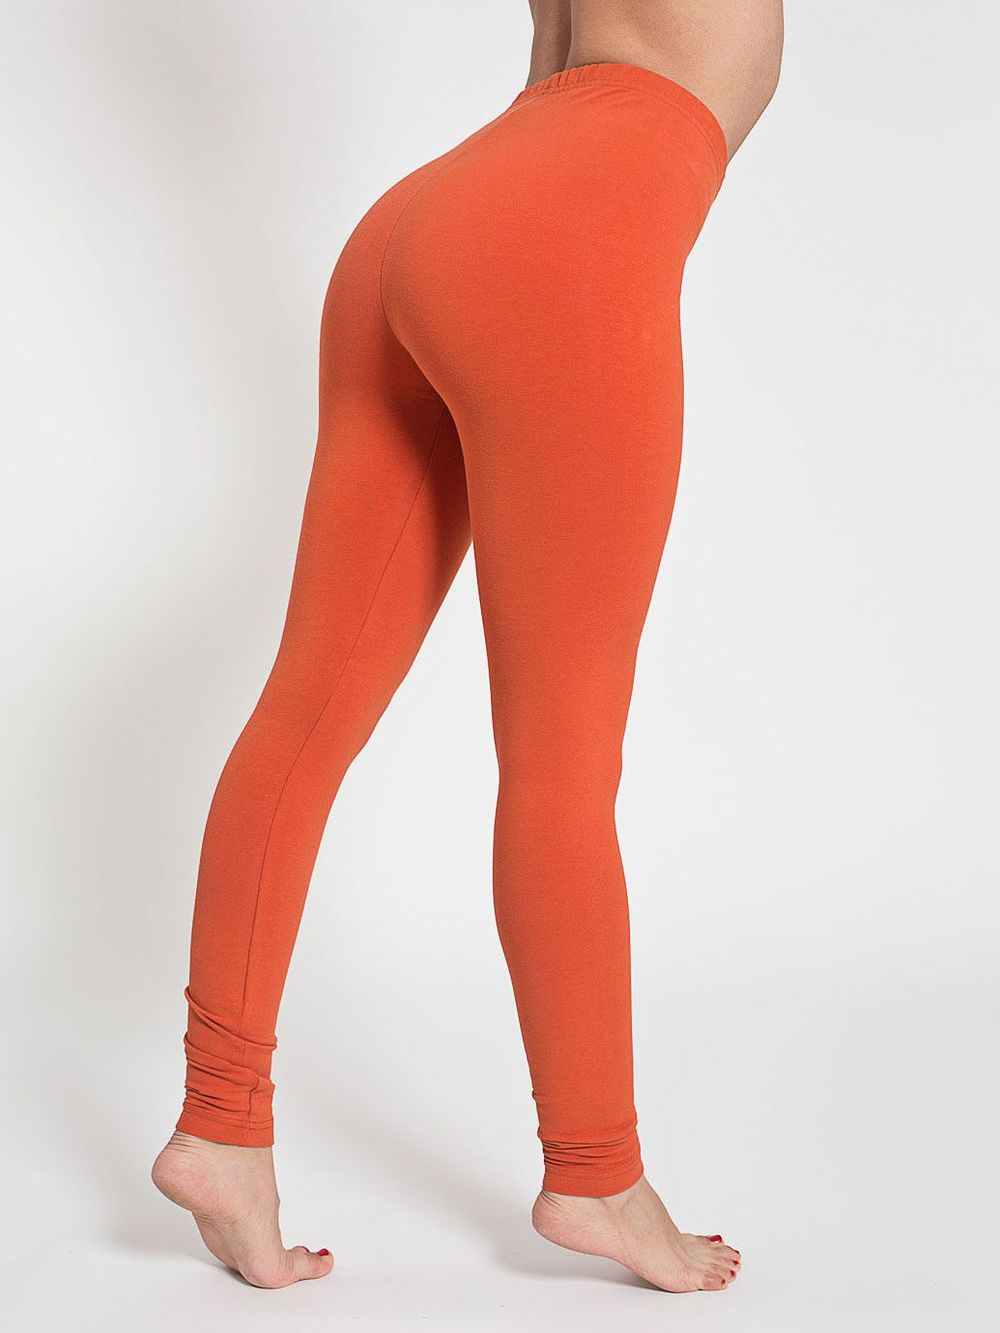 American Apparel Winter Leggings. Available in multiple colors. American Apparel. $38.